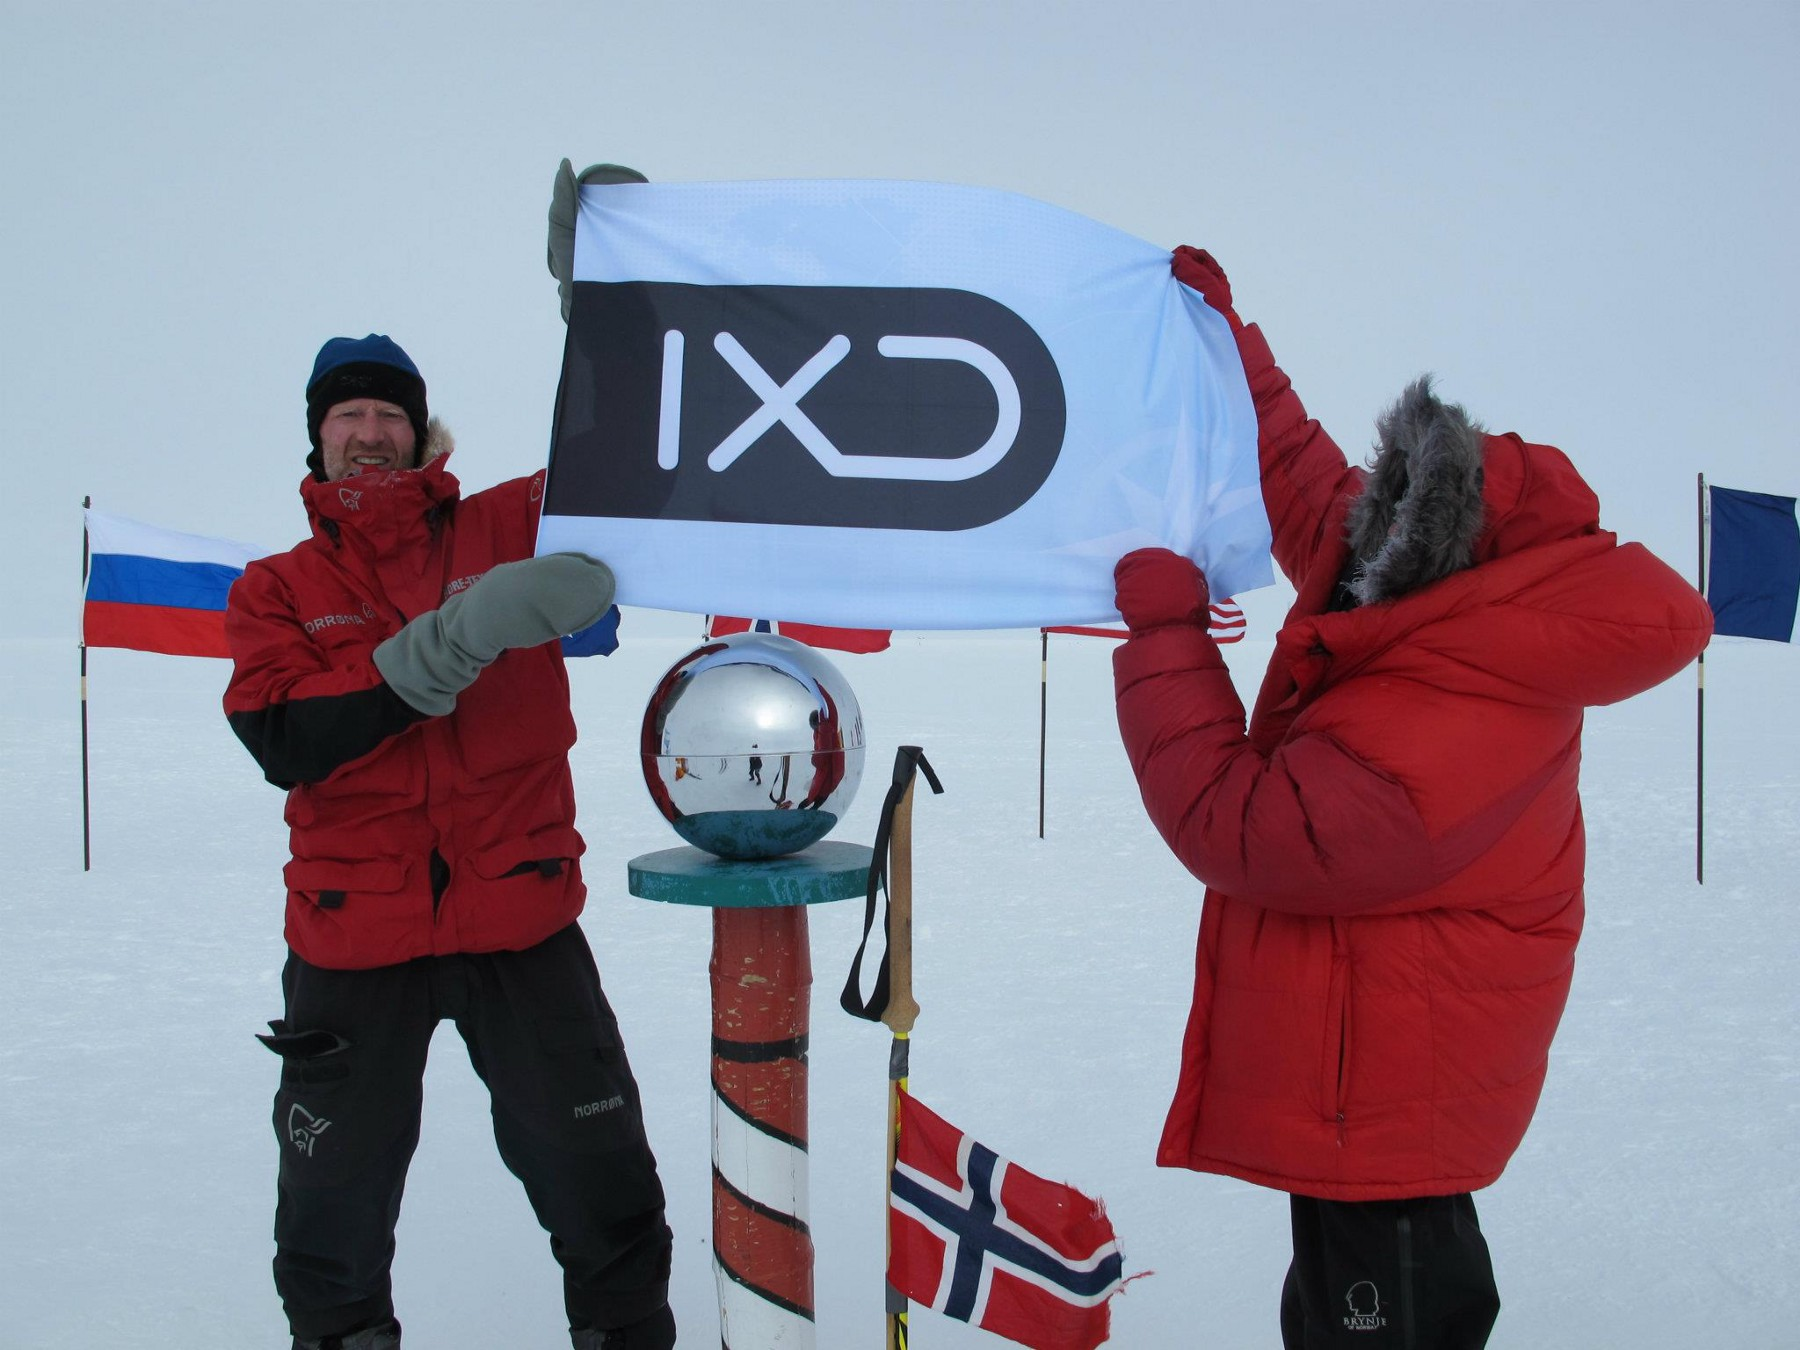 Børge Ousland and the IXD flag on the Southpole — 15th of desember 2011